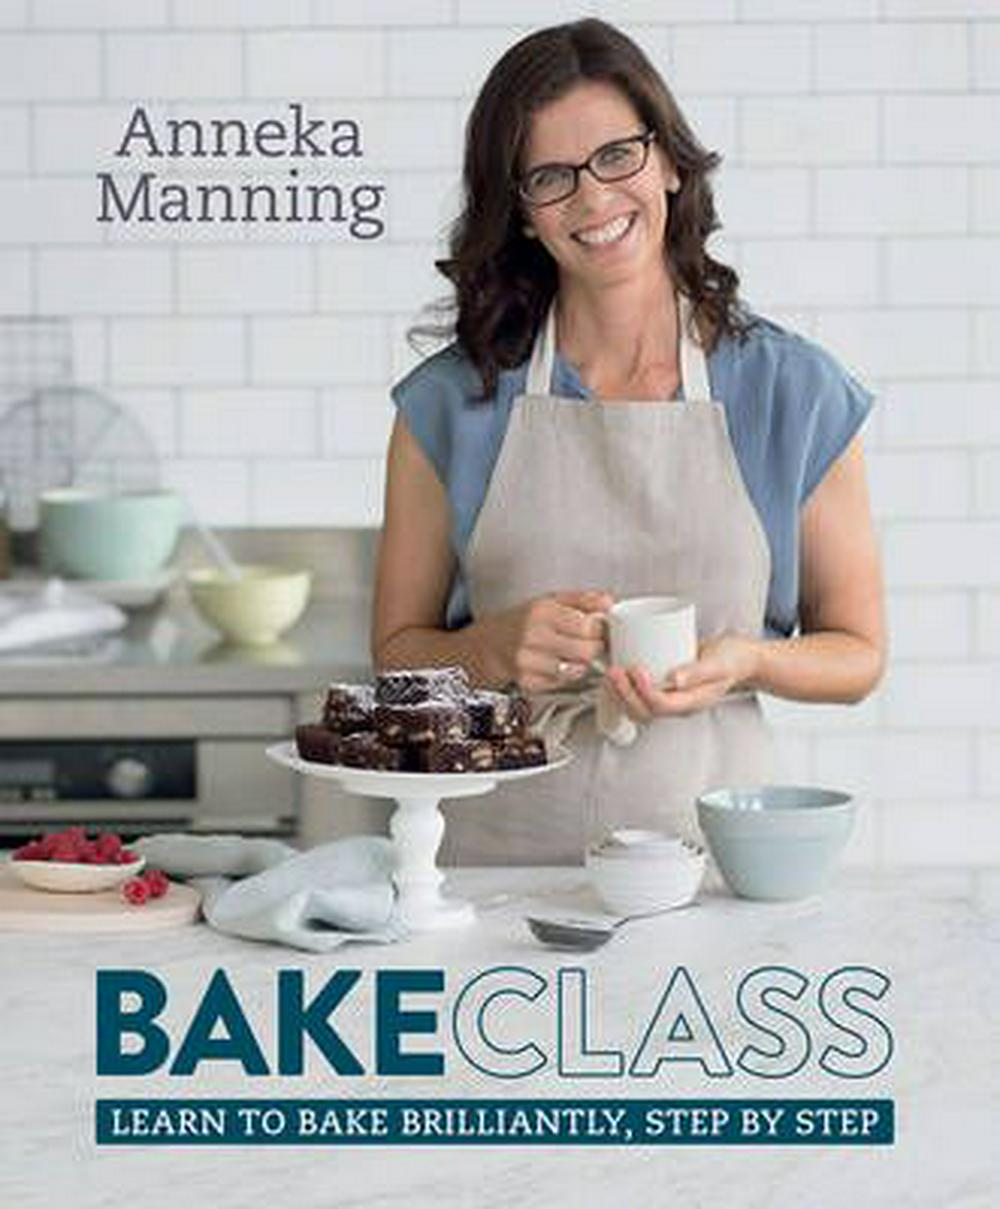 BakeClassLearn to bake brilliantly, step by step by Anneka Manning, ISBN: 9781743365717